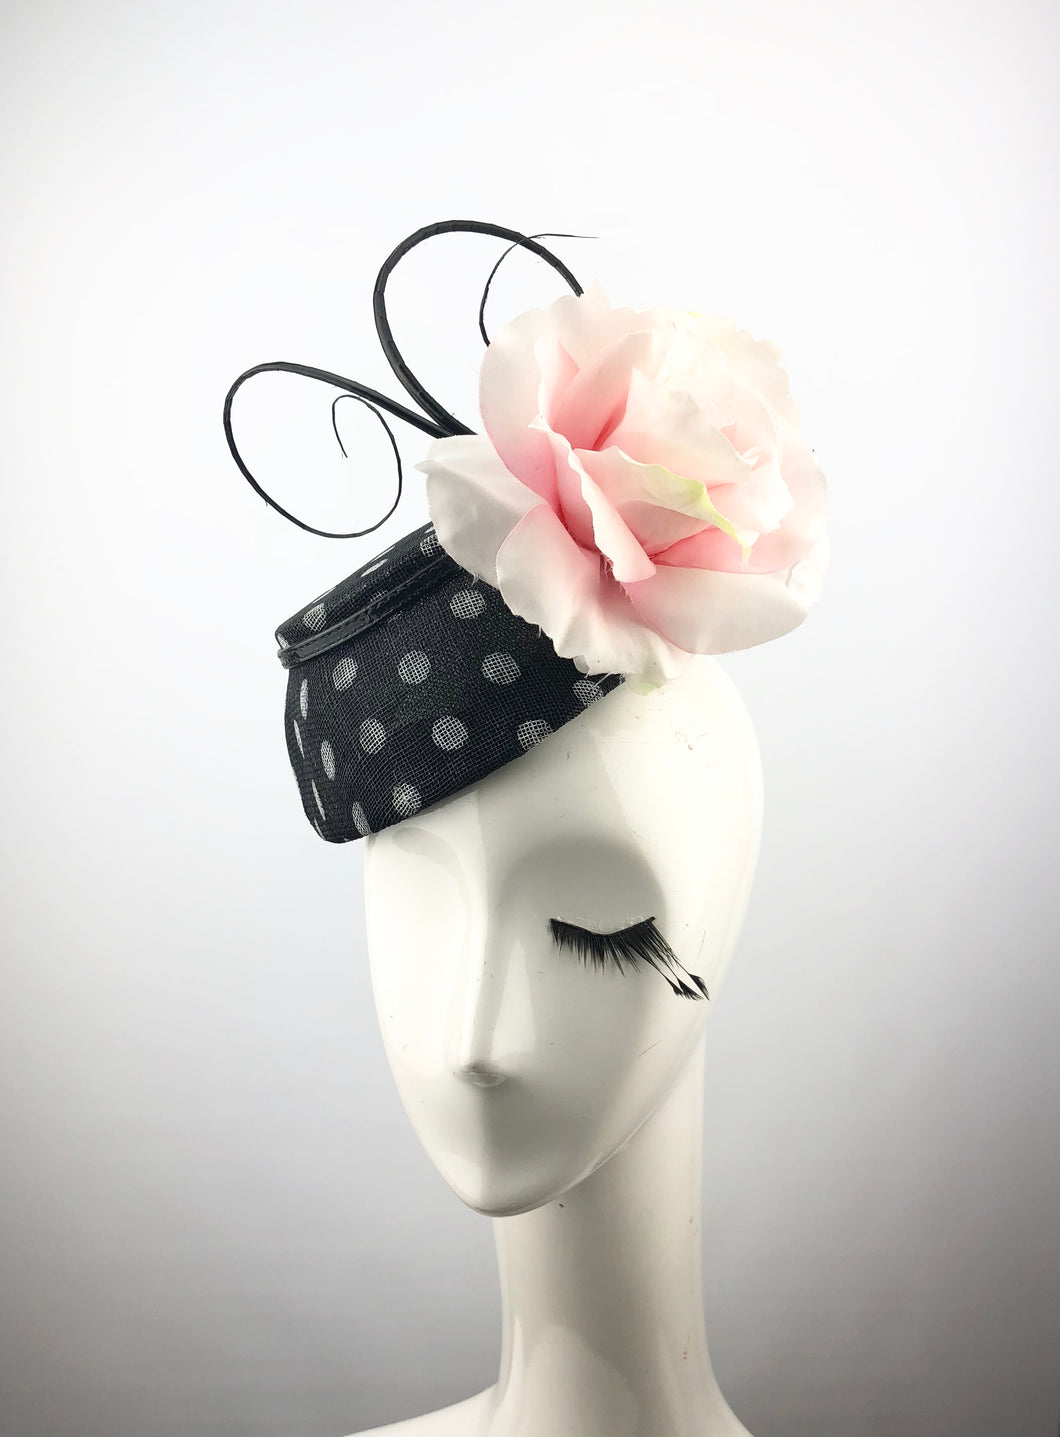 Black and White Polk-a-dot Headpiece